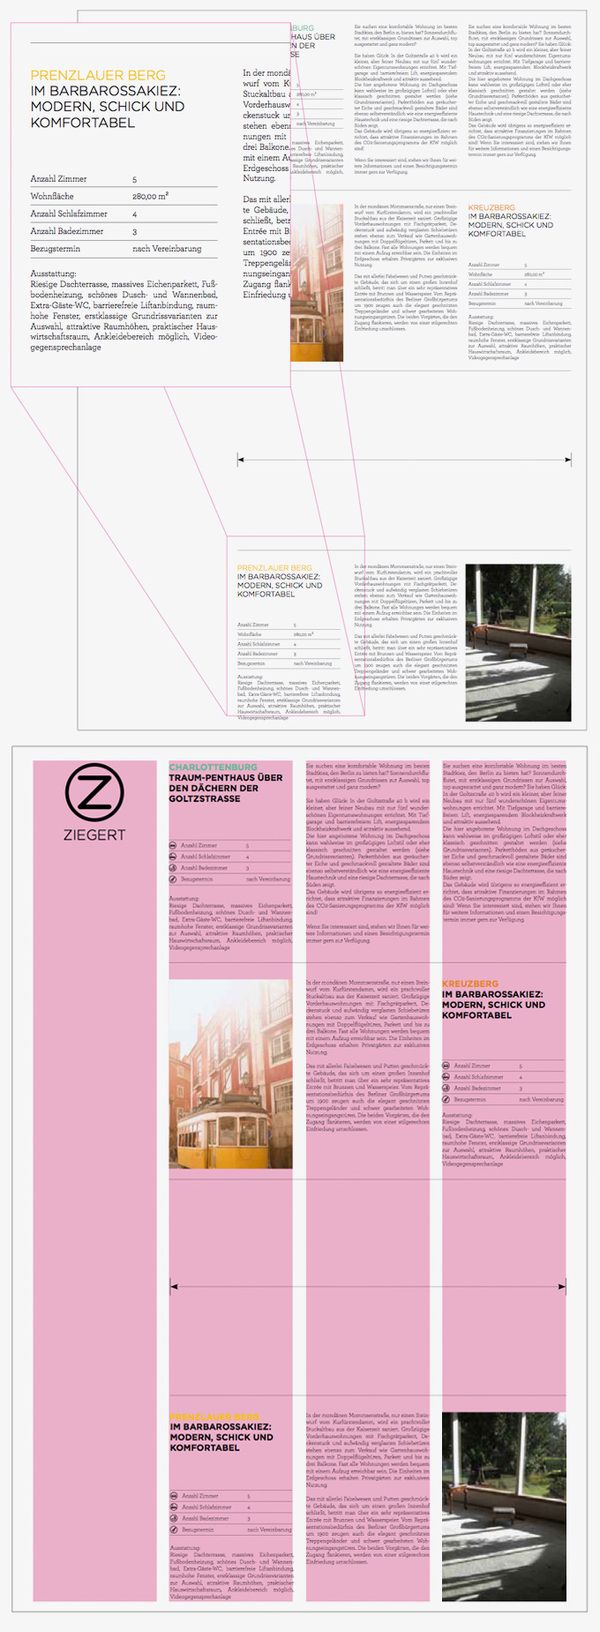 Ziegert immobilien ci by thomas weyres layouts pinterest